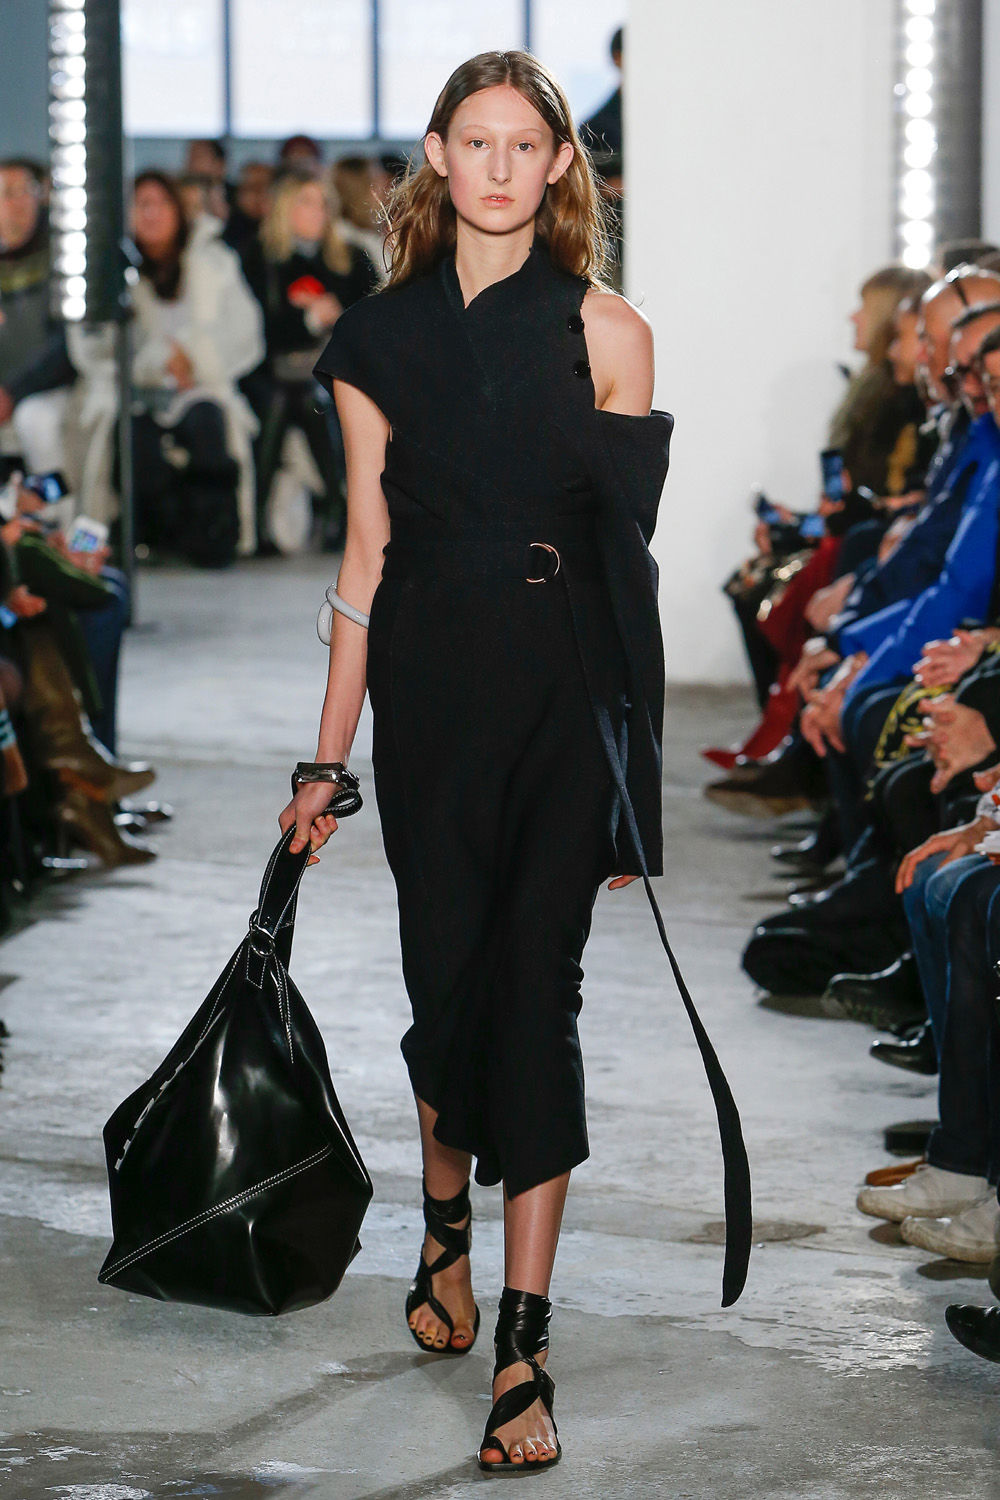 proenza schouler fall 2017 runway look 7